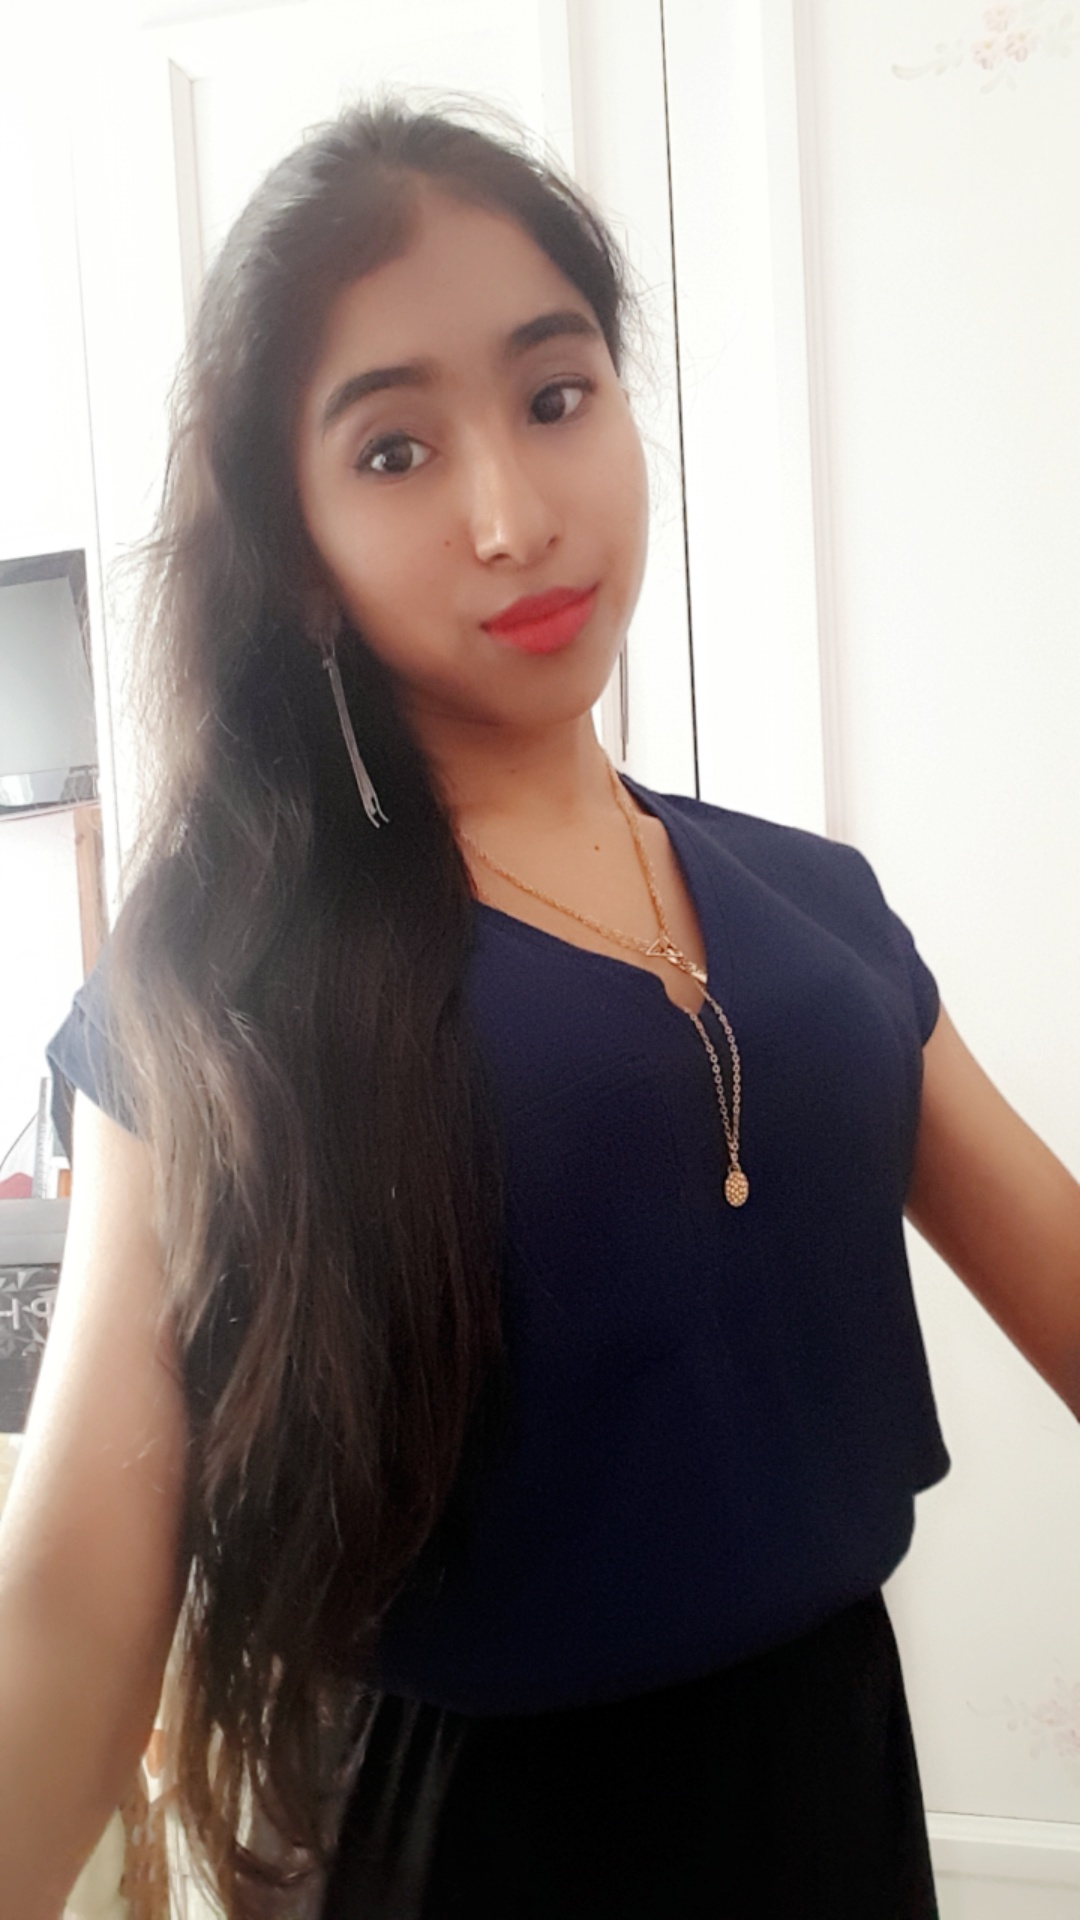 Profile picture of Miss M